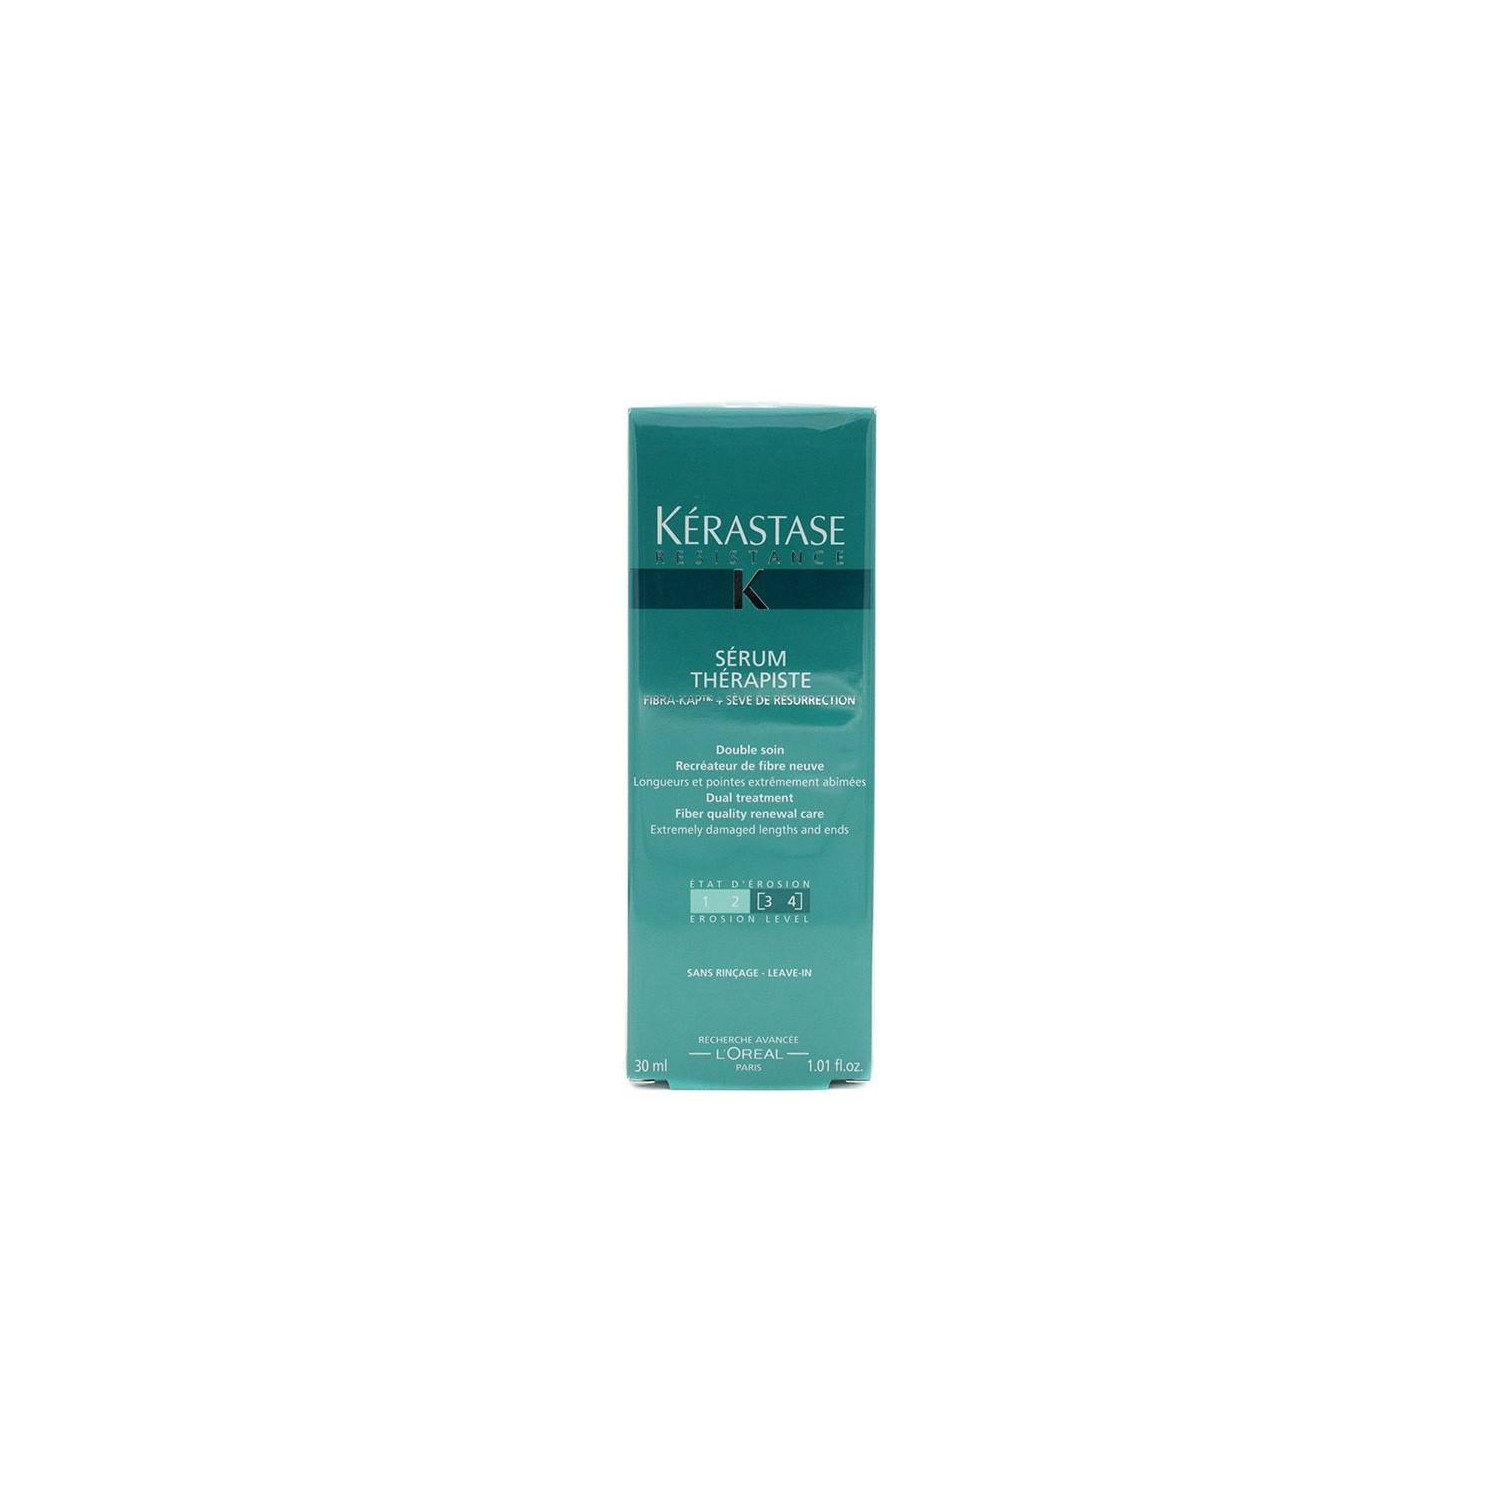 Kerastase Resistence Serum Therapiste 30ml